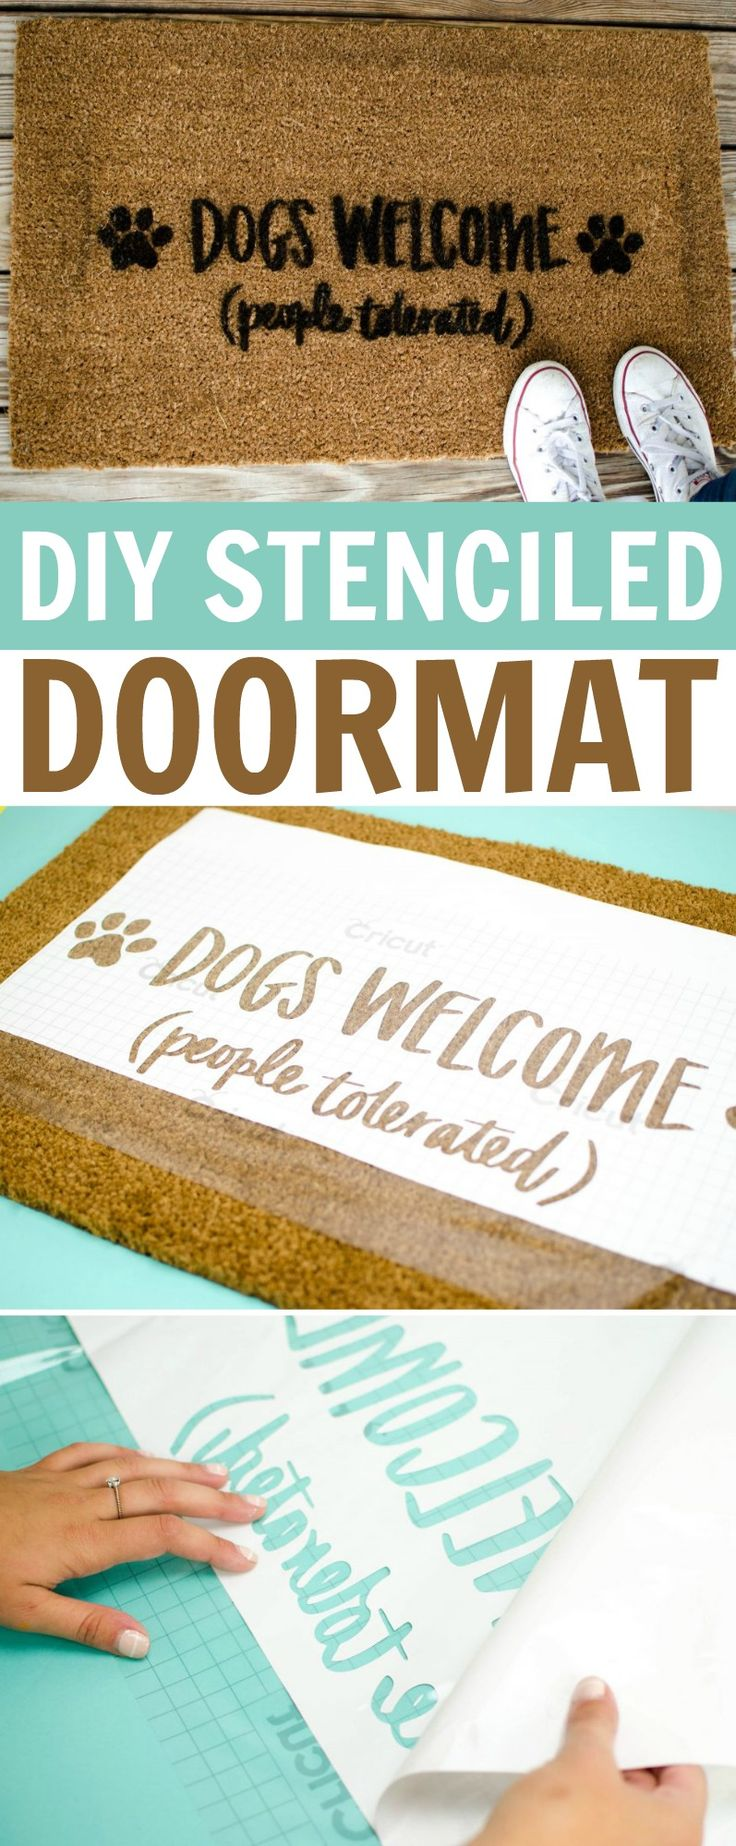 Every time a guest walks in your door, the personalized DIY Stenciled Doormat wi...